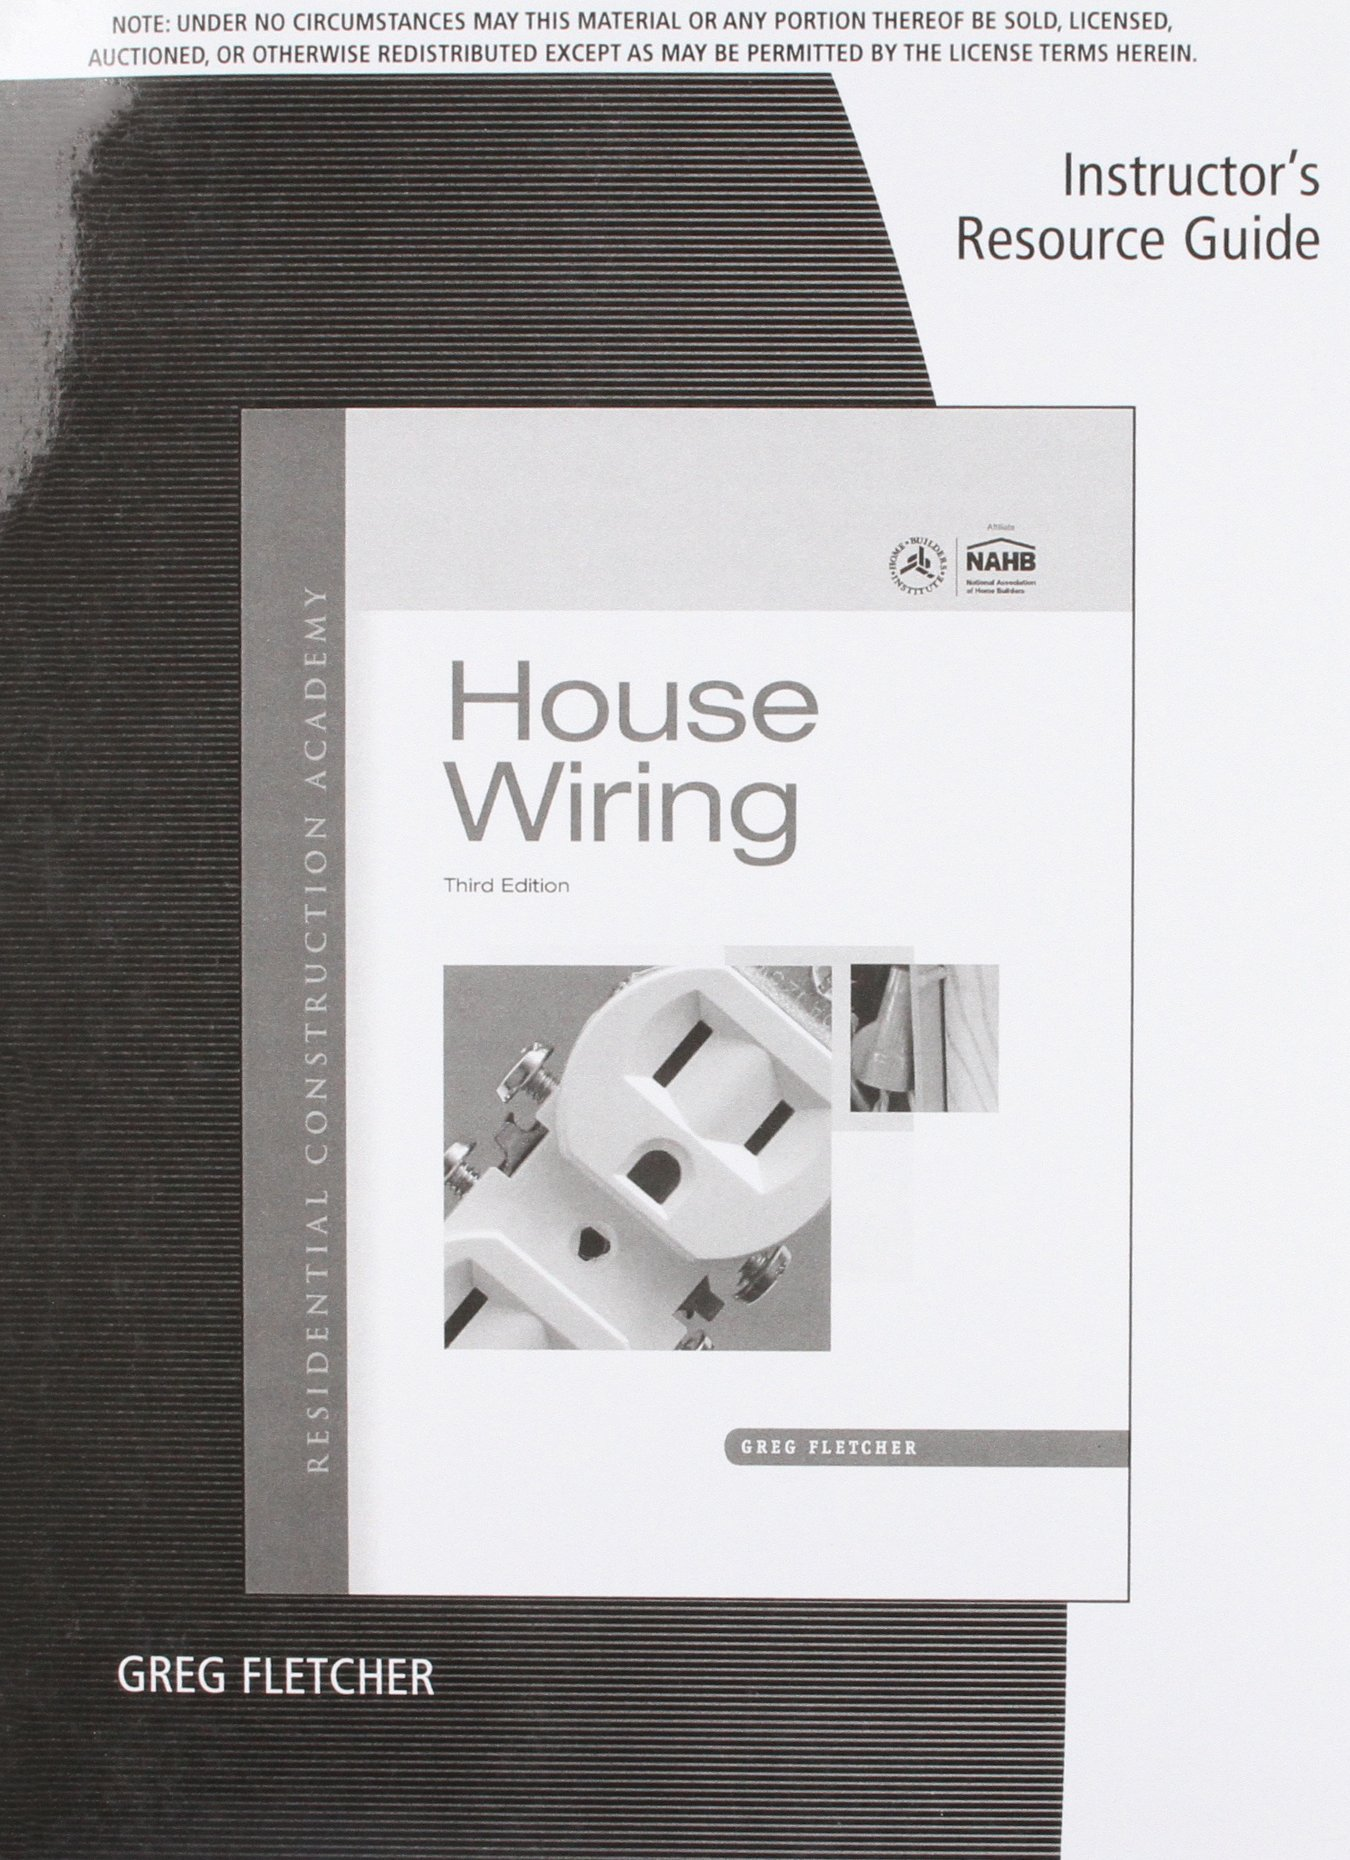 Irg RCA House Wiring 3e: 9781111306229: Amazon.com: Books